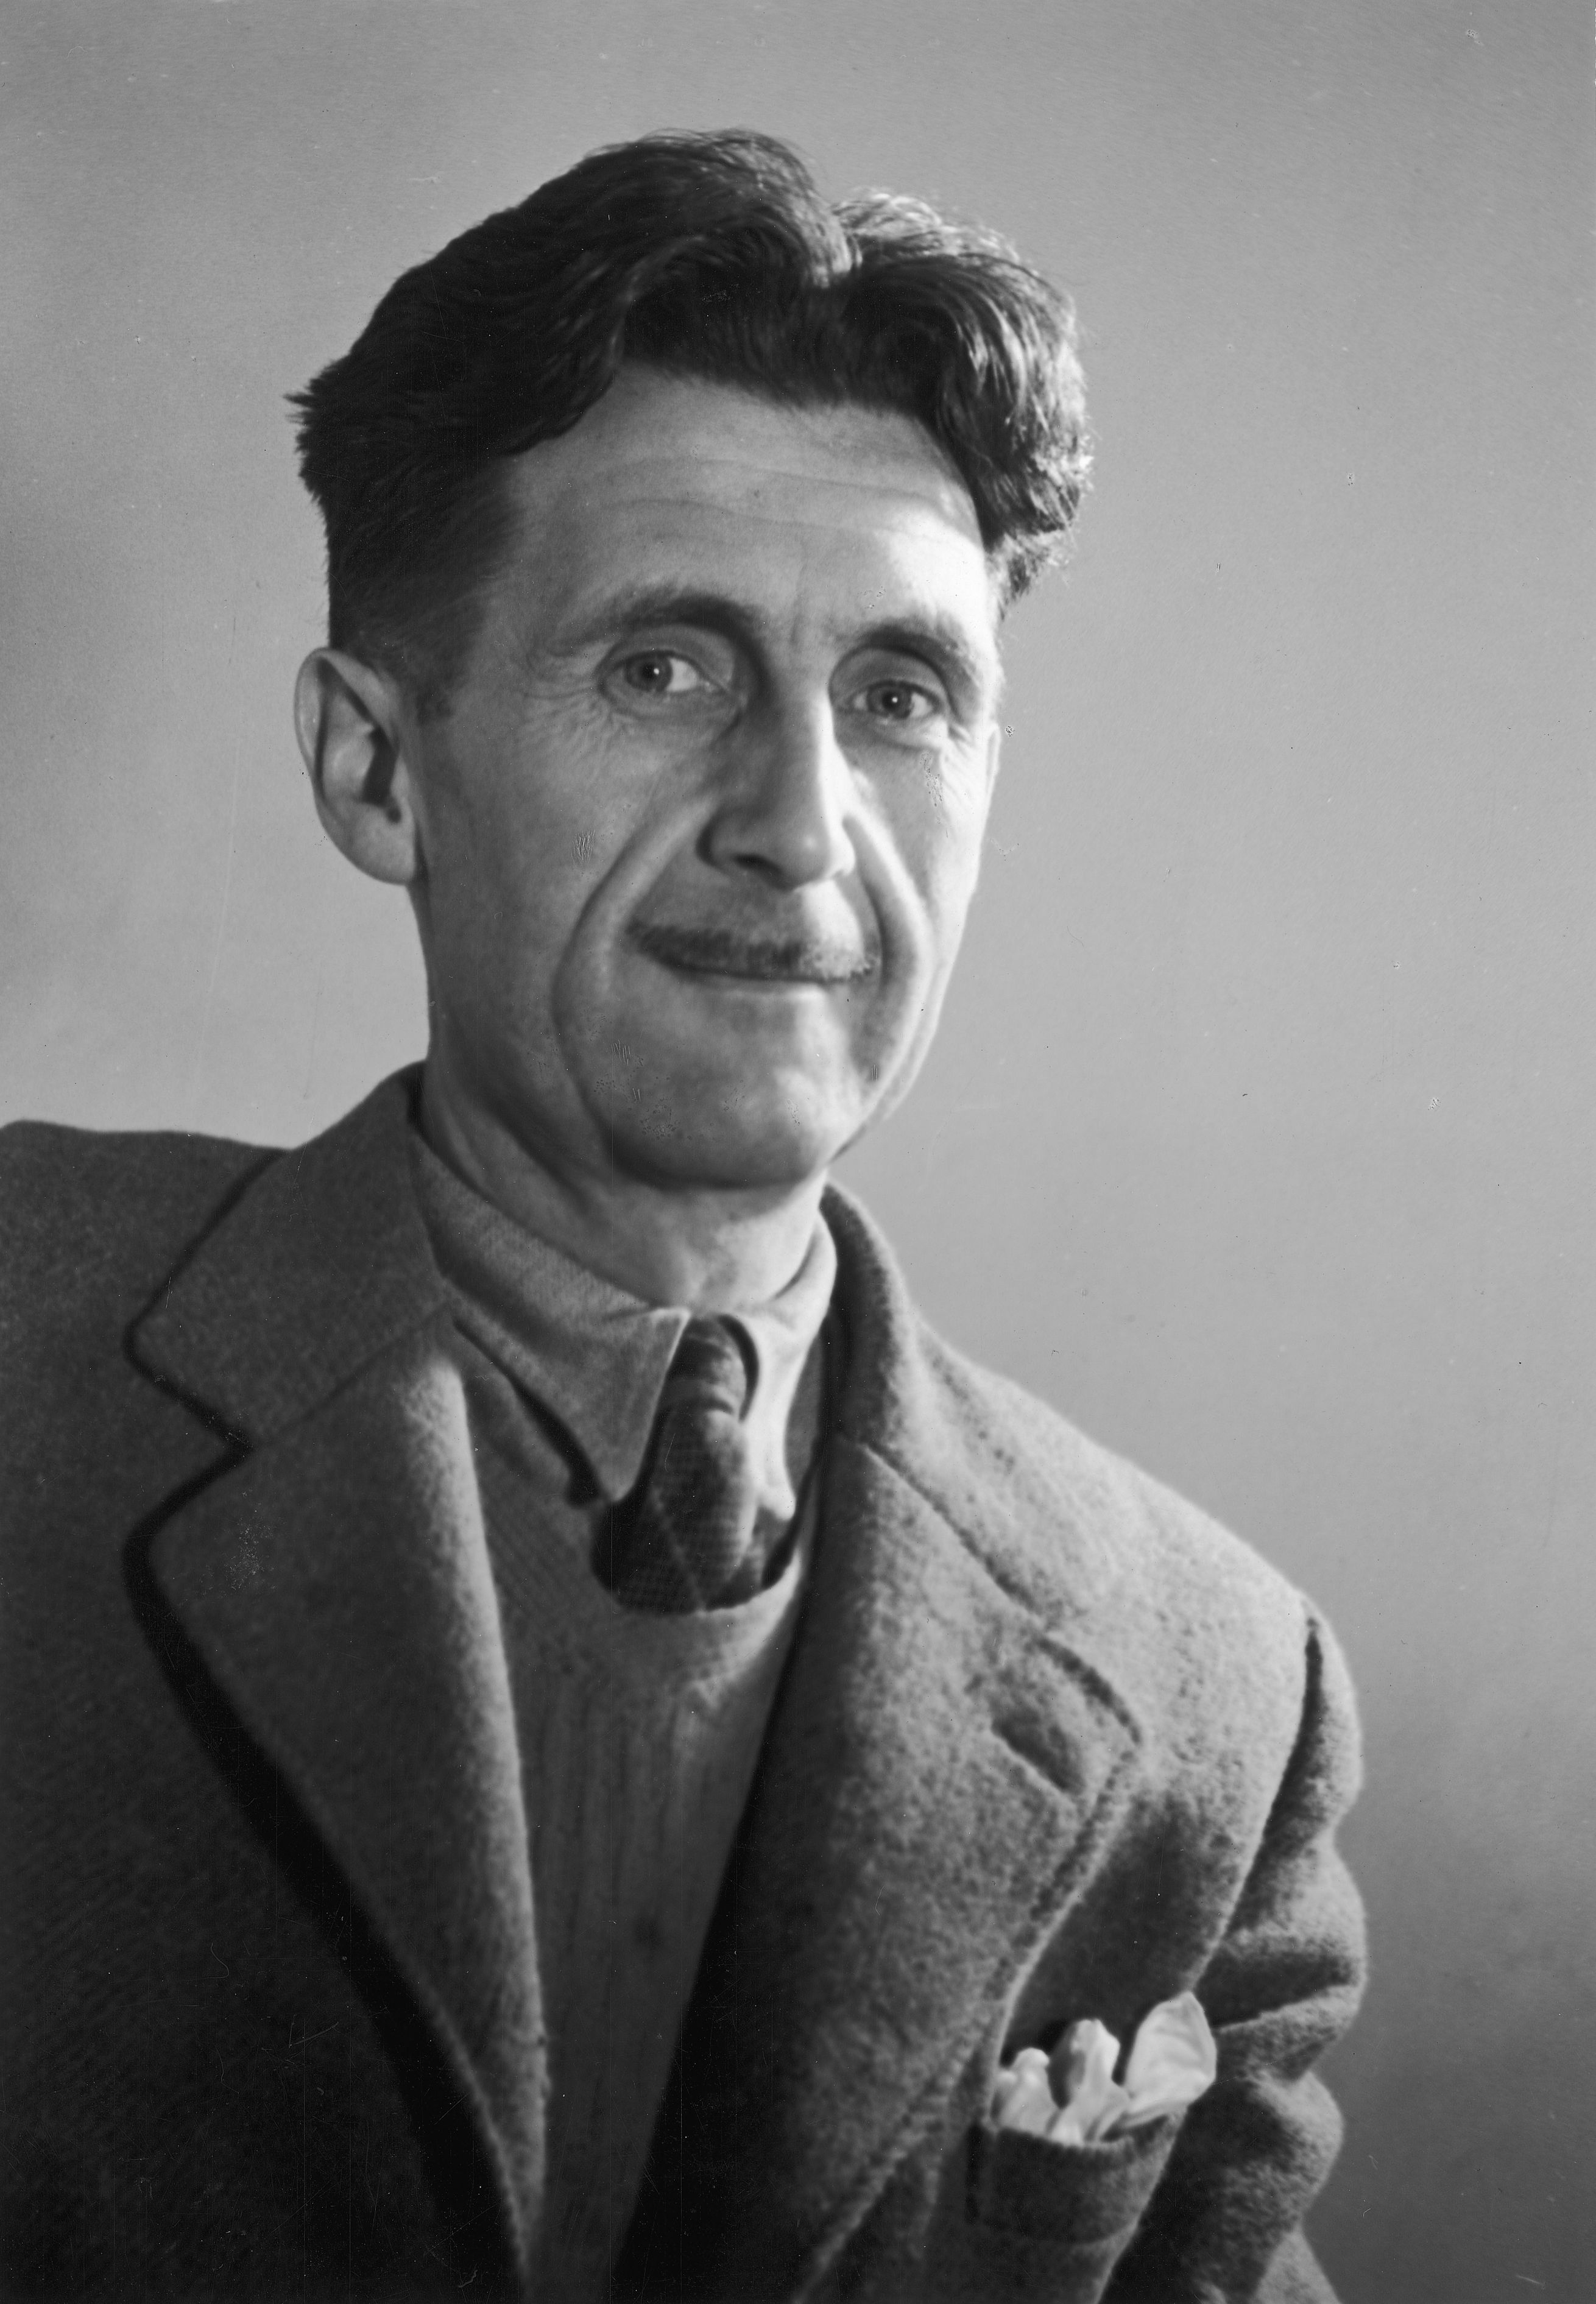 george orwells animal farm as social criticism The move has been met with criticism from around the world china bans letter 'n' and george orwell's animal farm as president xi jinping extends grip on power | london evening standard es_masthead.